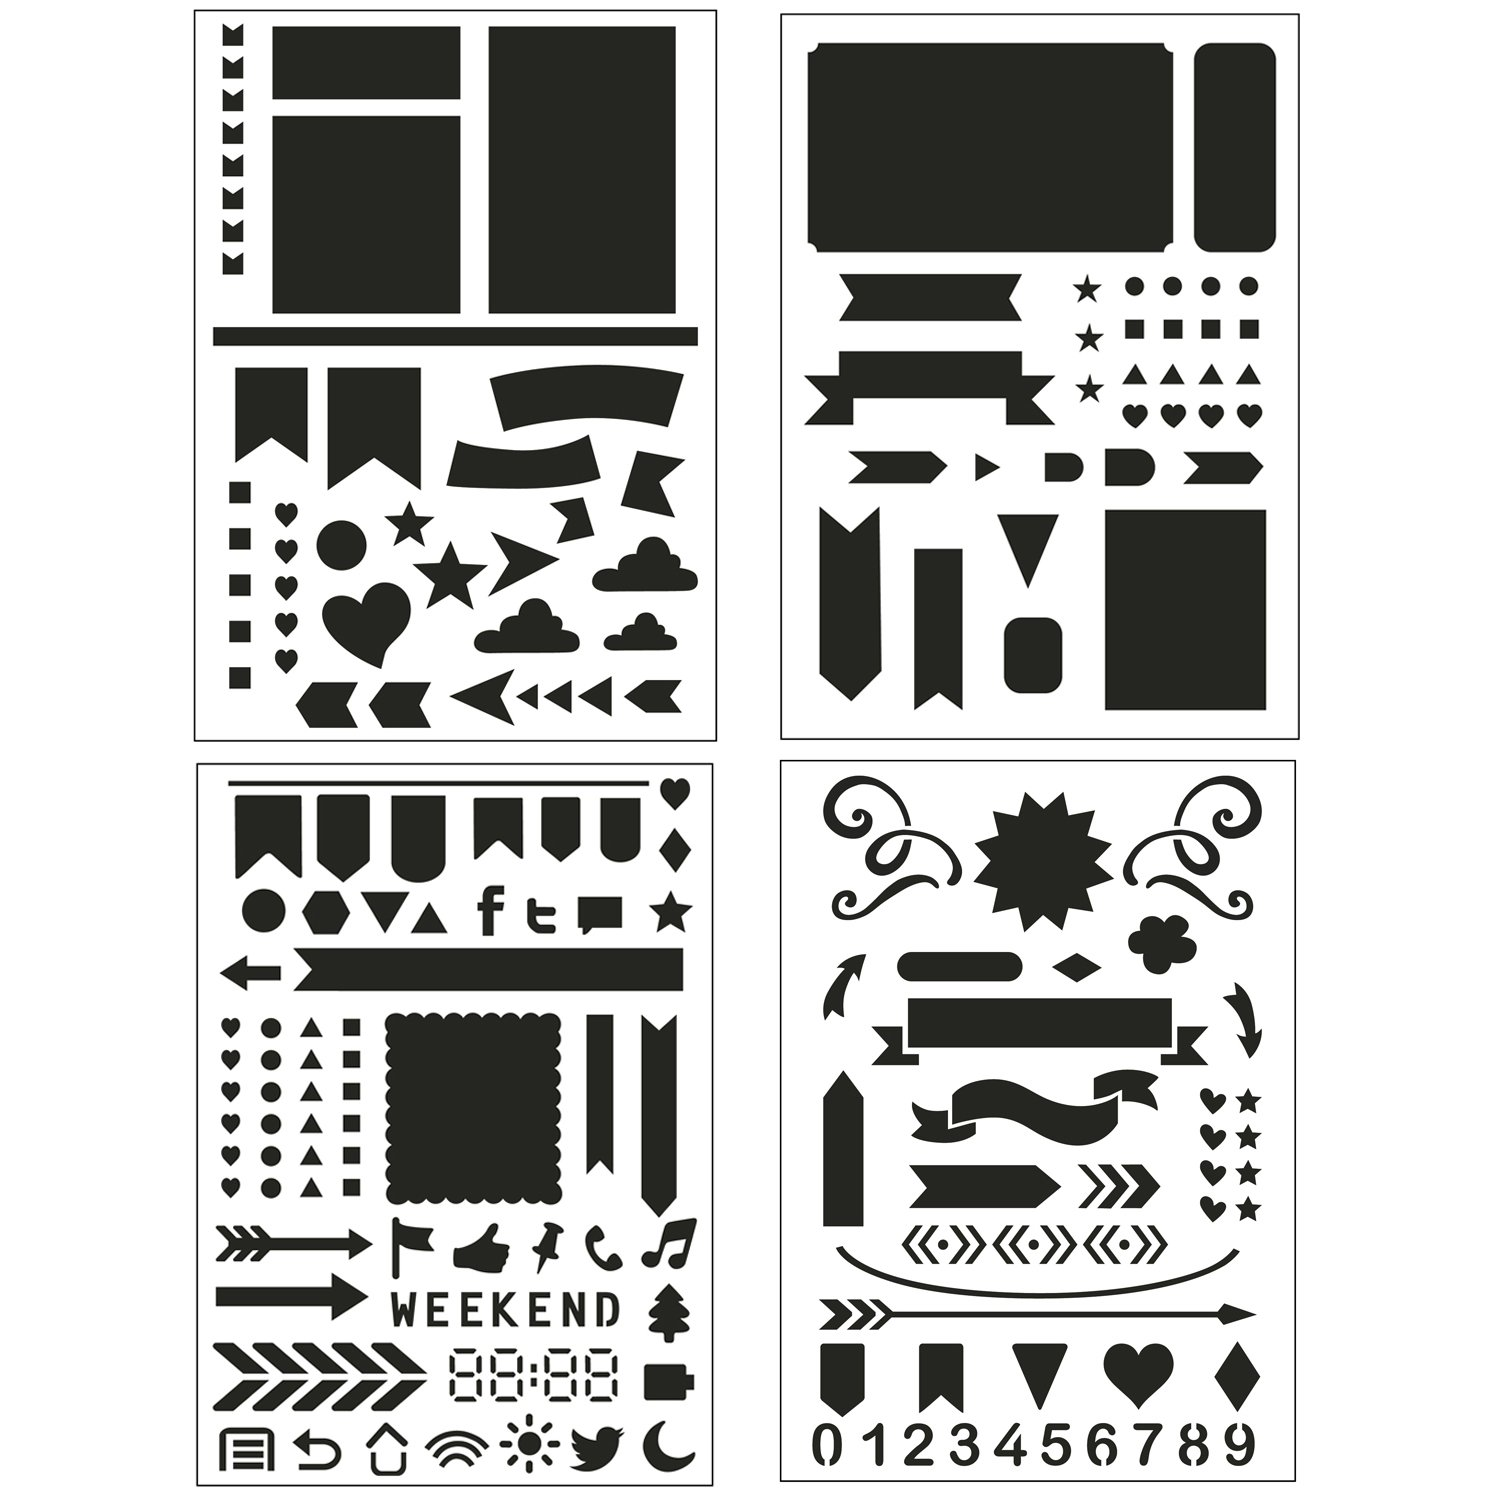 Bullet Journal Stencil Set 4 Pack - Banners, Dividers, Icons Fits Leuchtturm & Moleskine A5 Notebooks, Best Used with Huhuhero Fineliners & Sakura ...